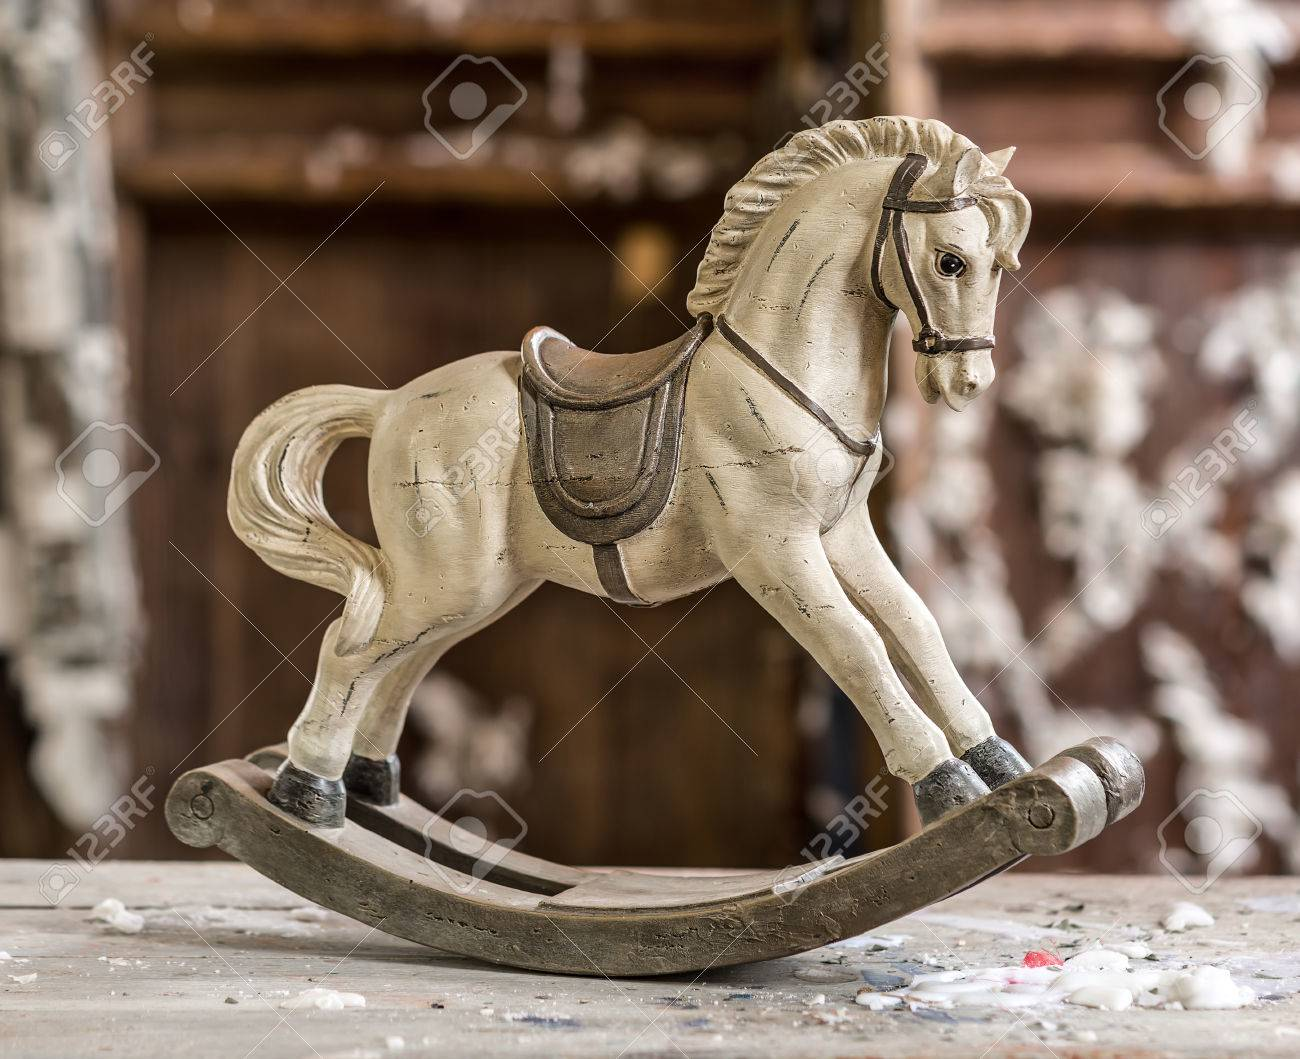 Vintage Old Rocking Horse On A Wooden Background Stock Photo Picture And Royalty Free Image Image 25968713